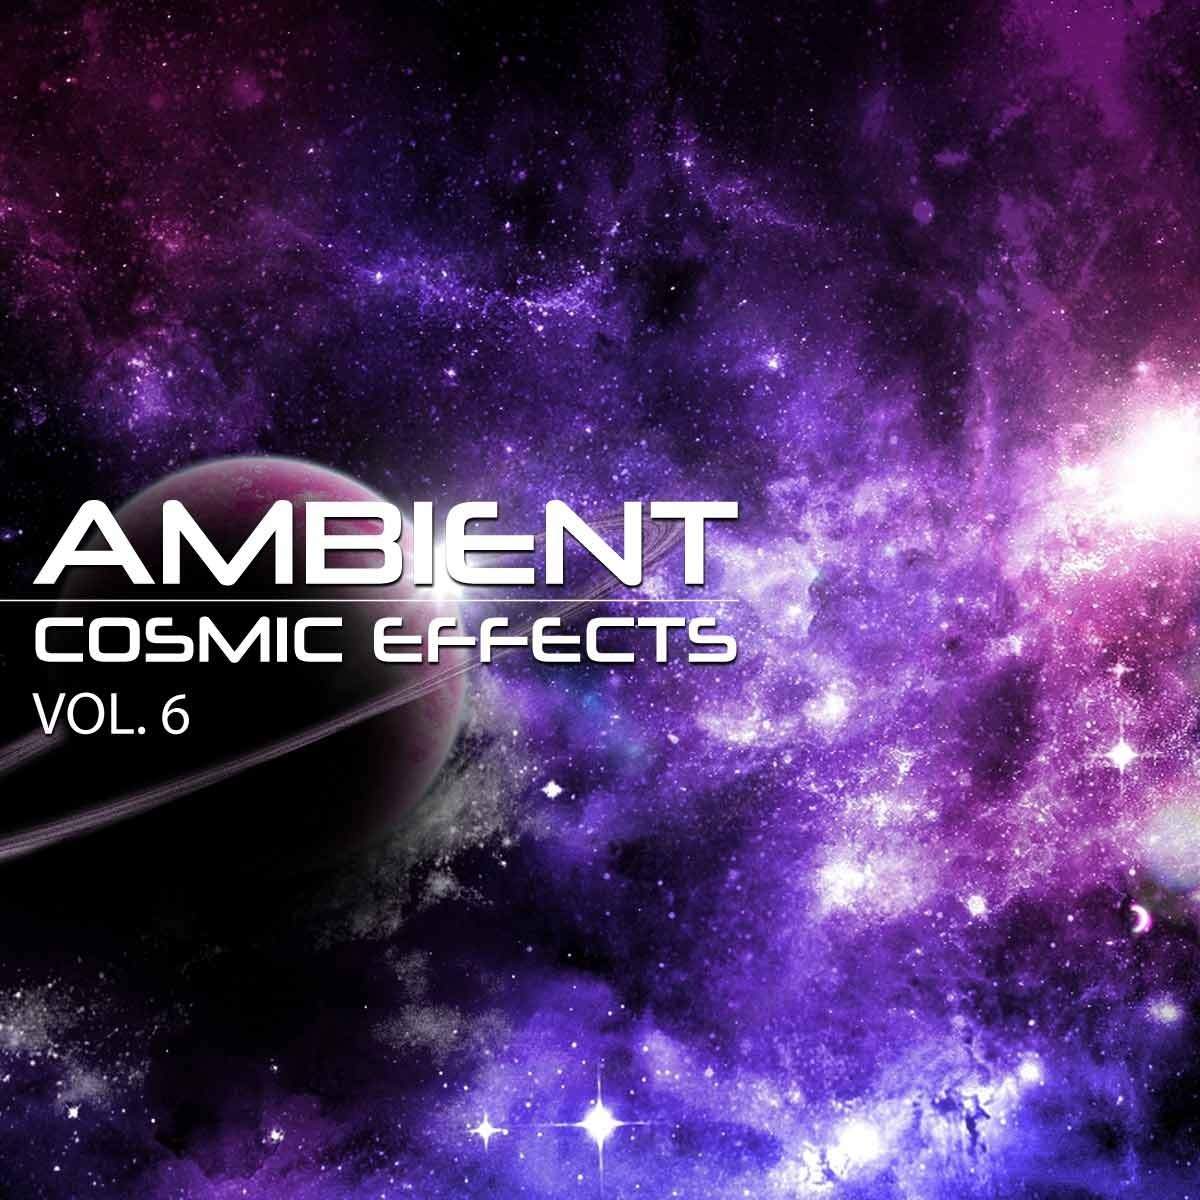 Ambient Cosmic Effects Vol 6